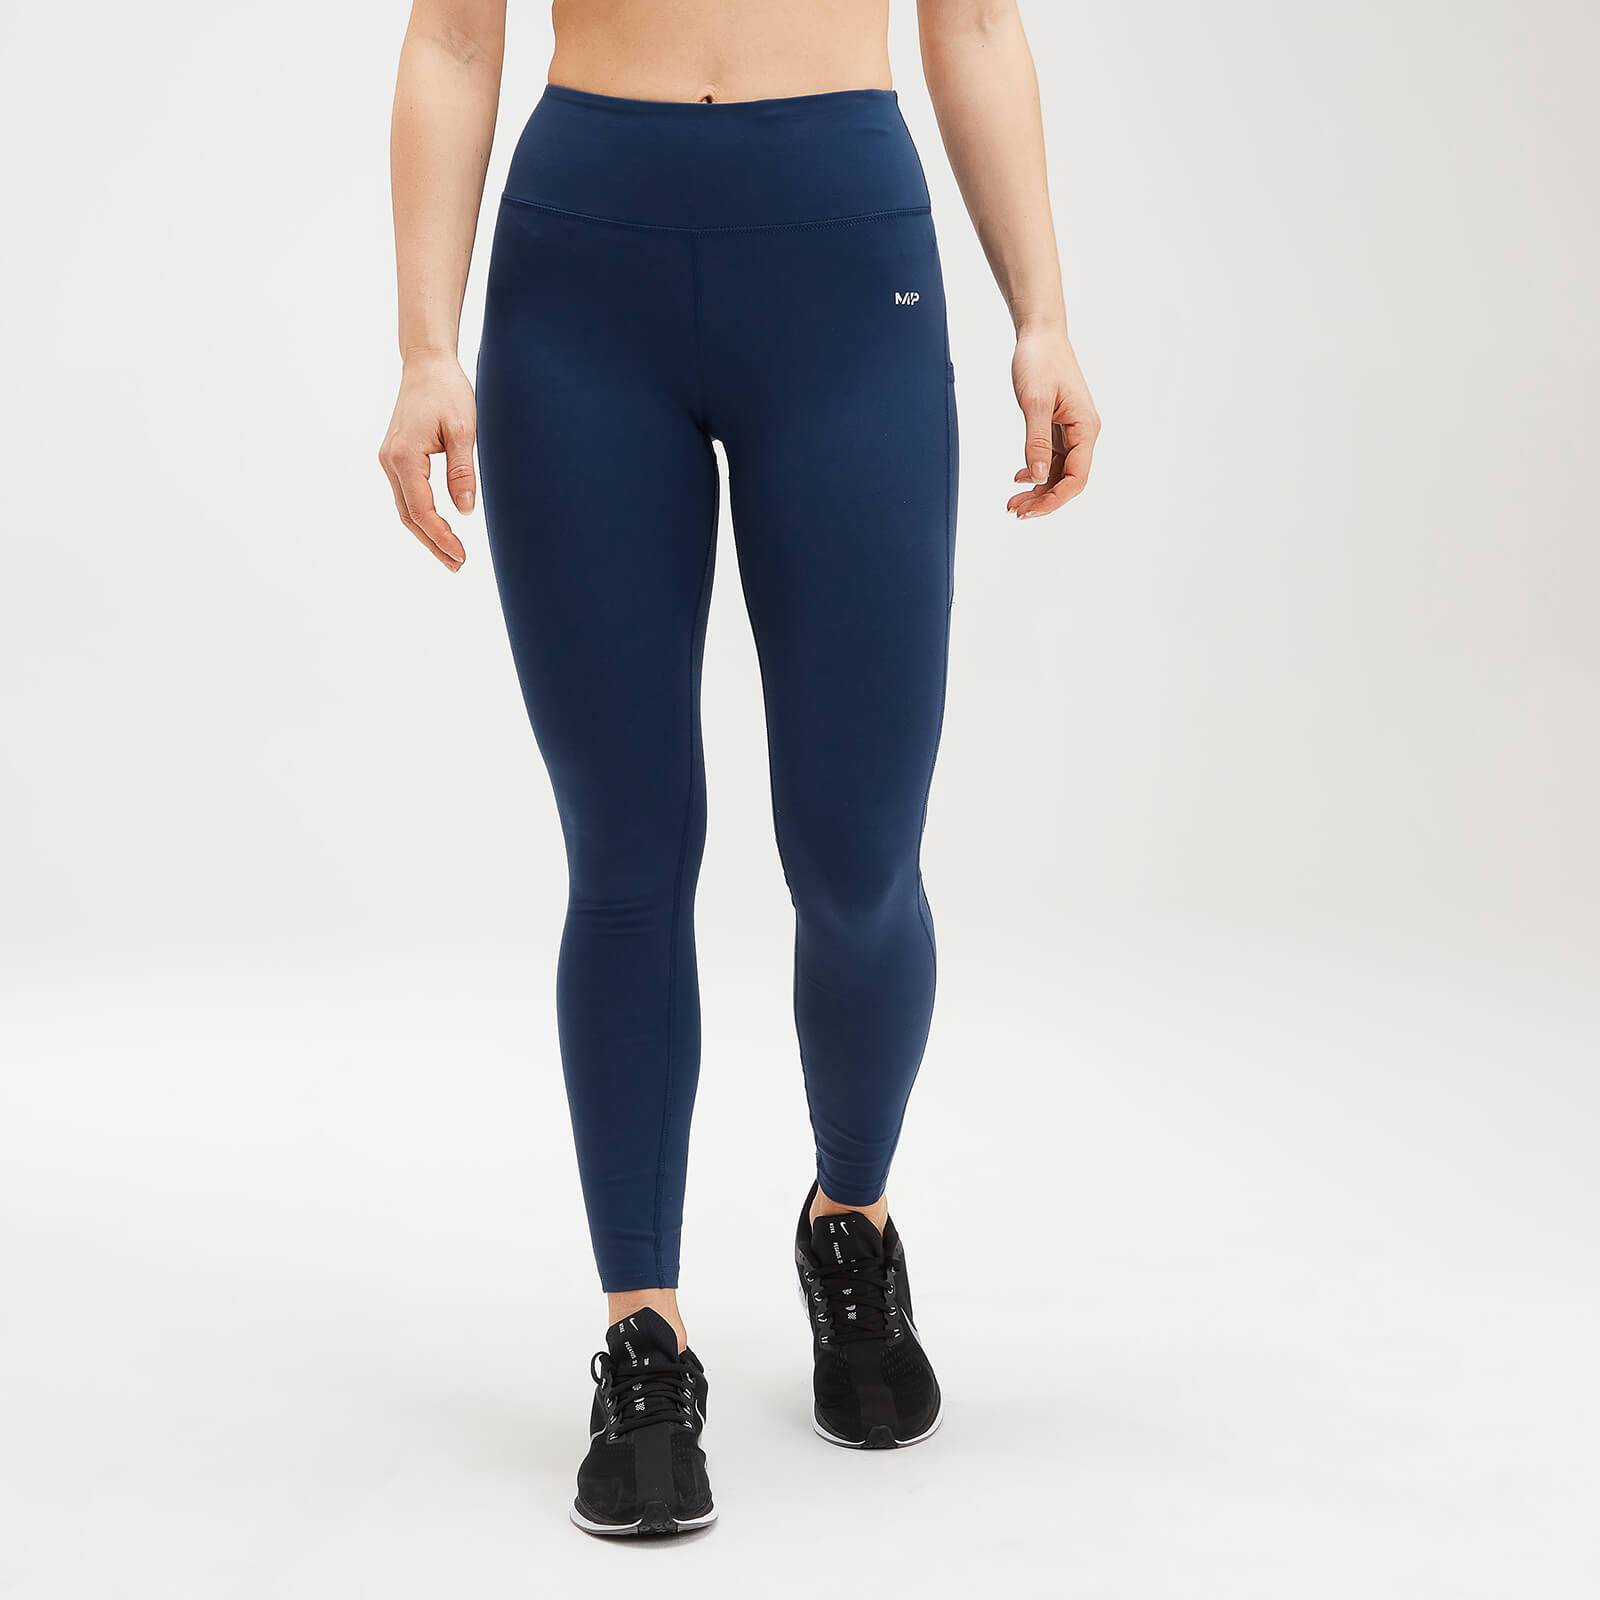 Mp Women's Power Mesh Leggings - Dark Blue - L